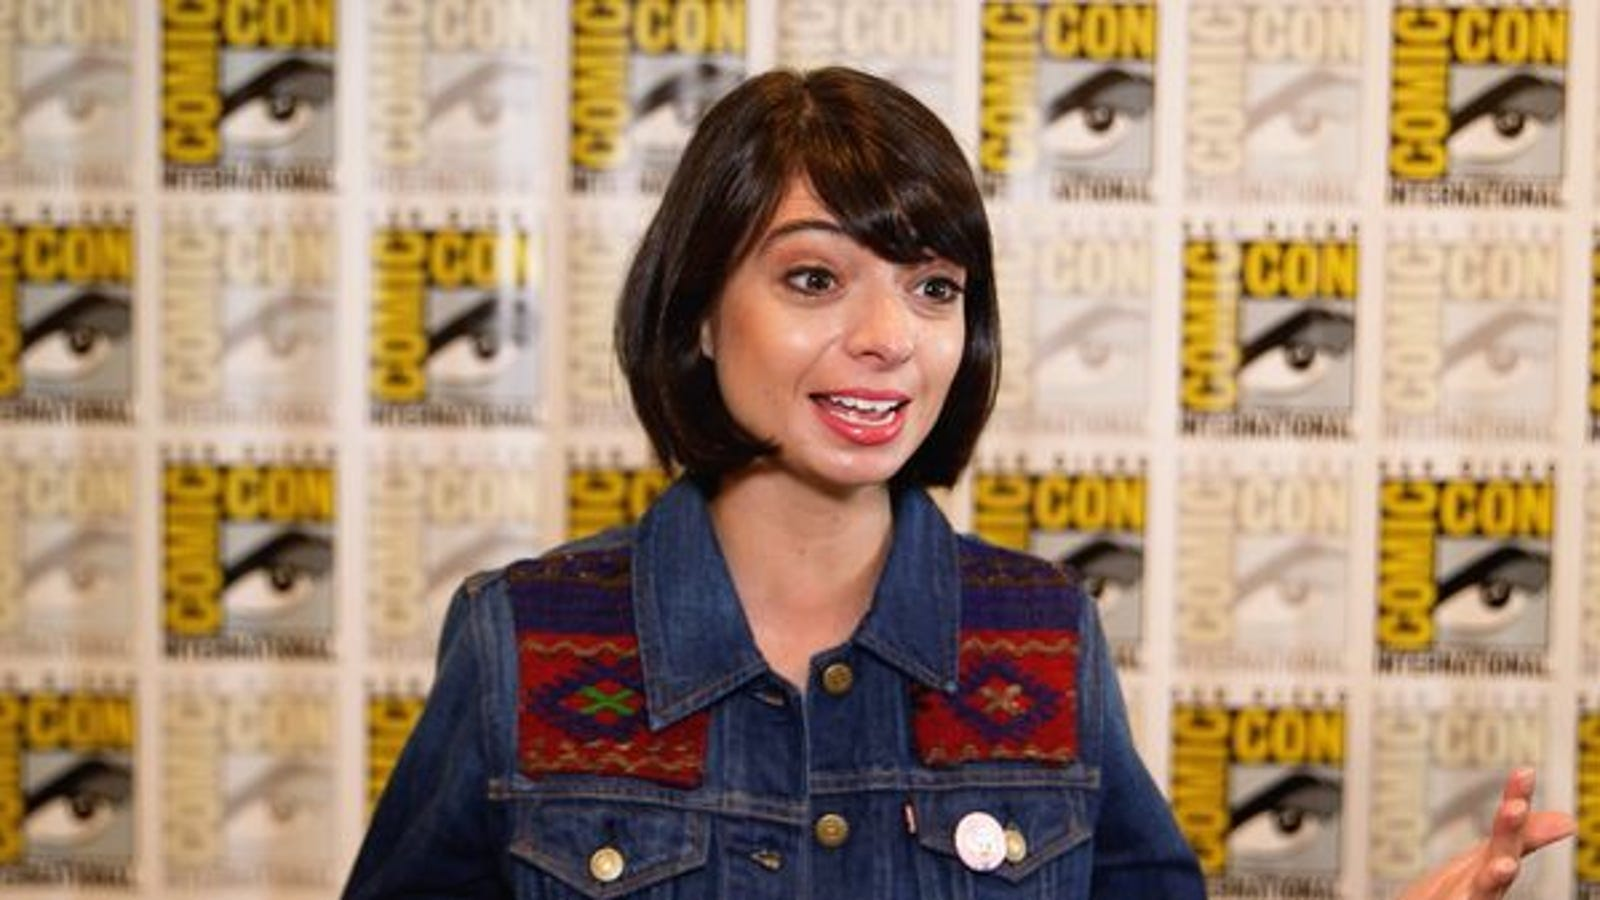 Bikini Paparazzi Kate Micucci naked photo 2017